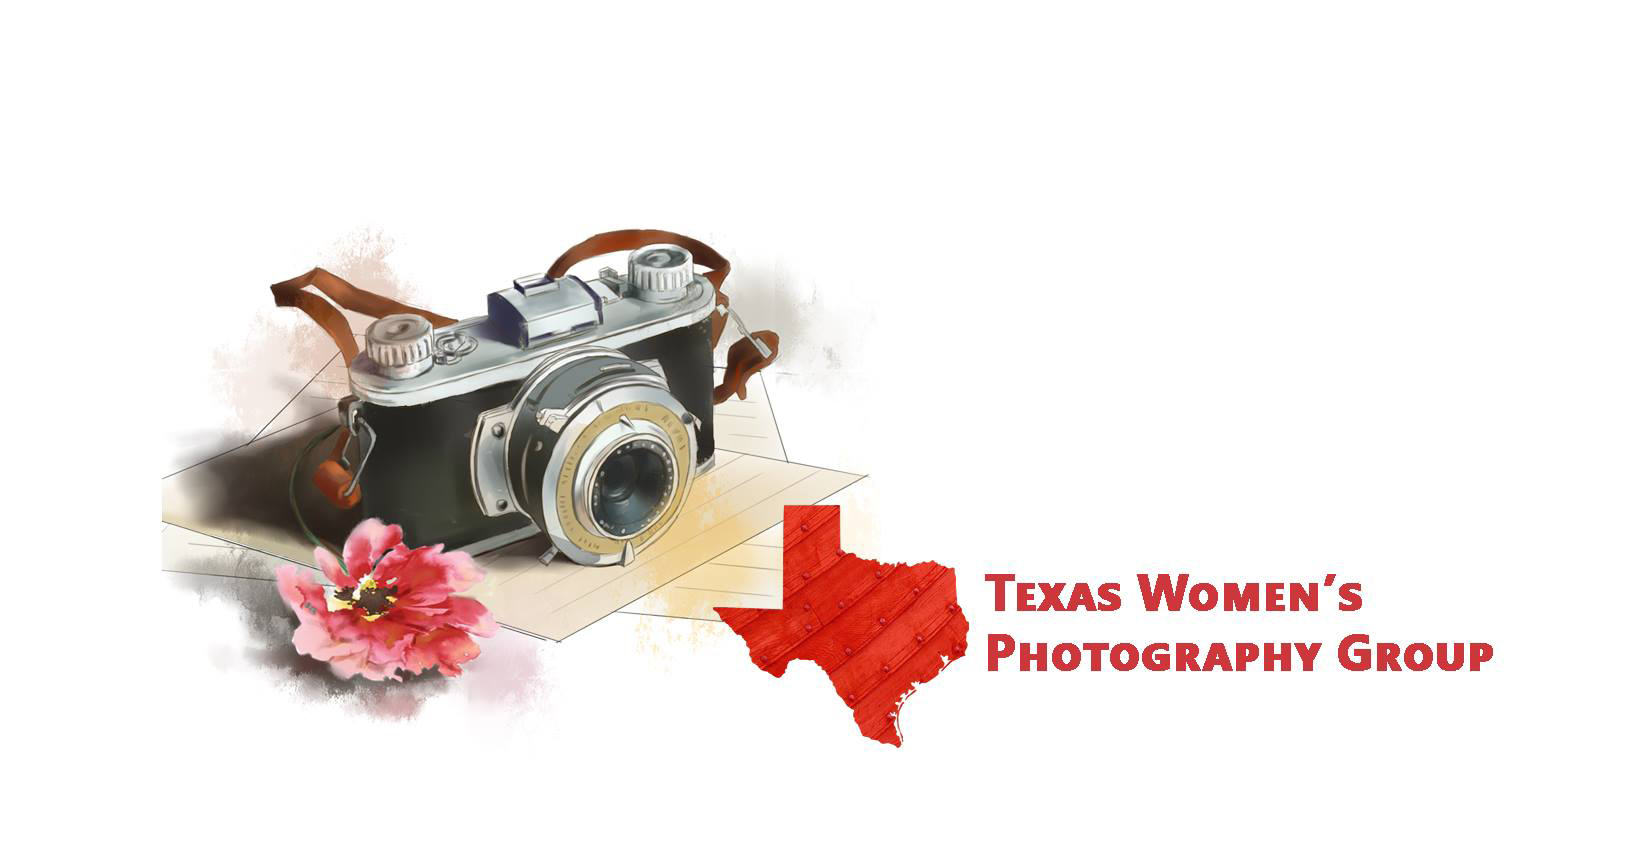 Texas Women's Photography Group Icon Image